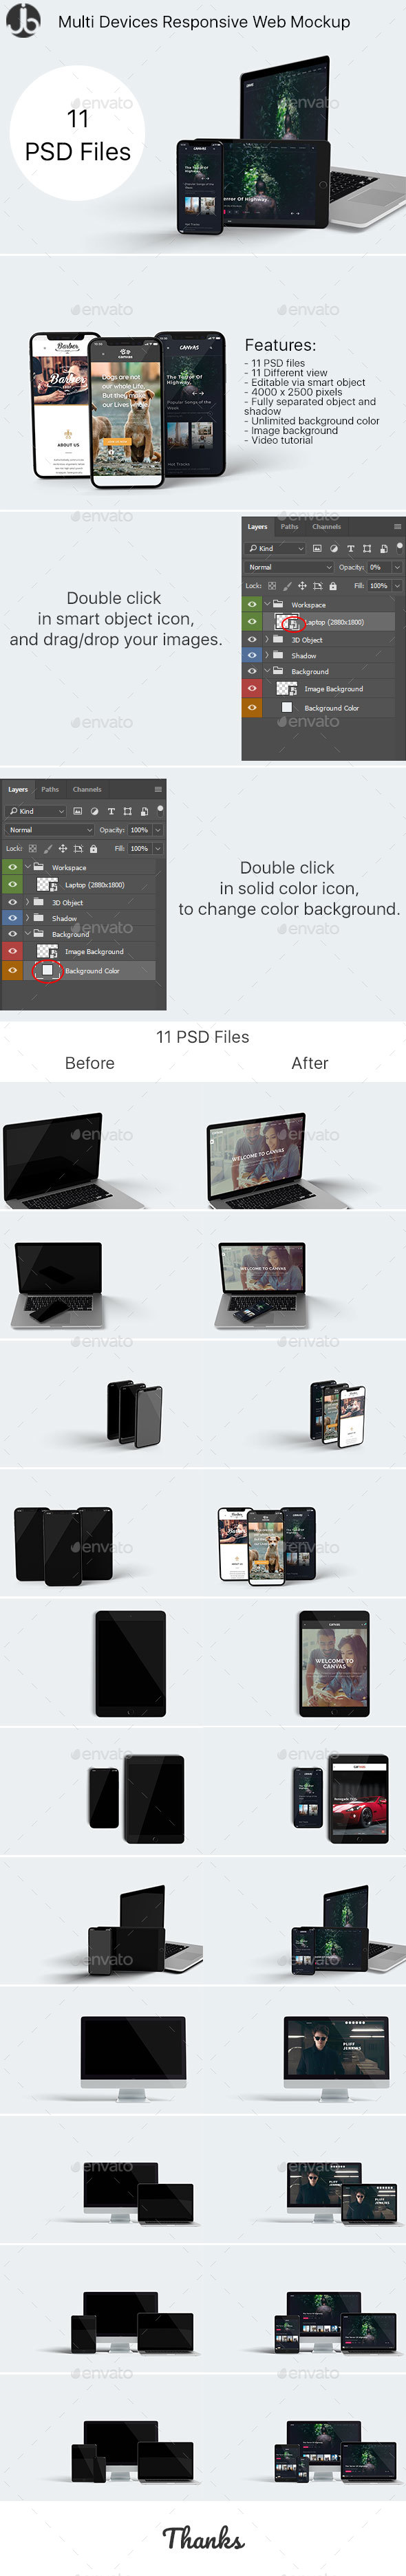 Multi Devices Responsive Website Mockup - Monitors Displays